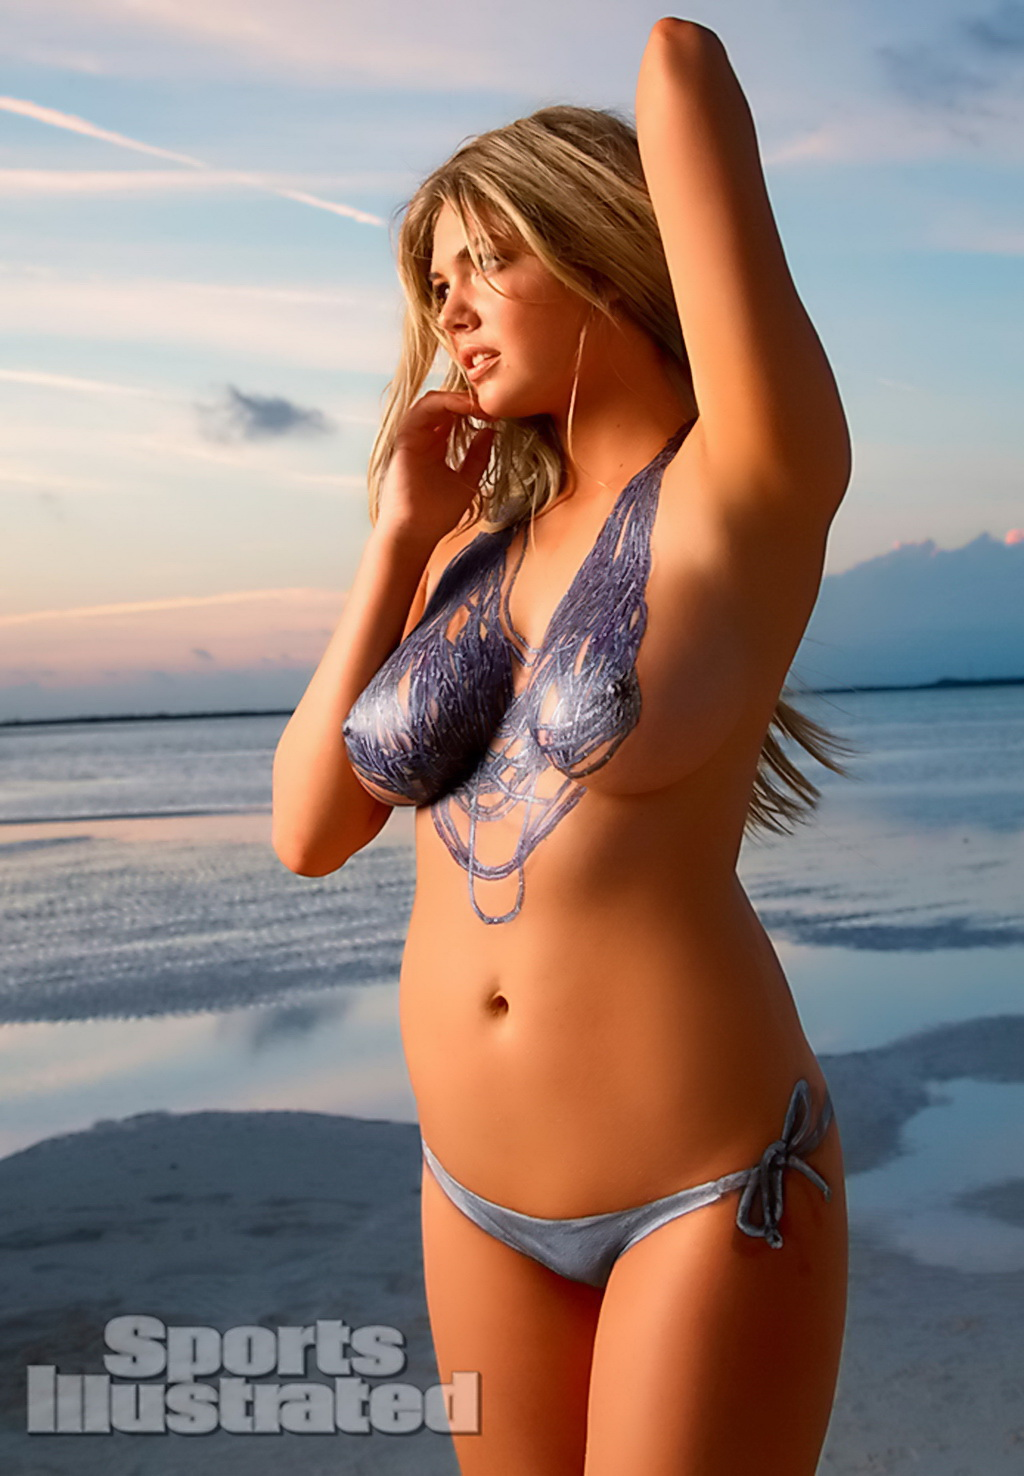 Kate upton sports illustrated body paint